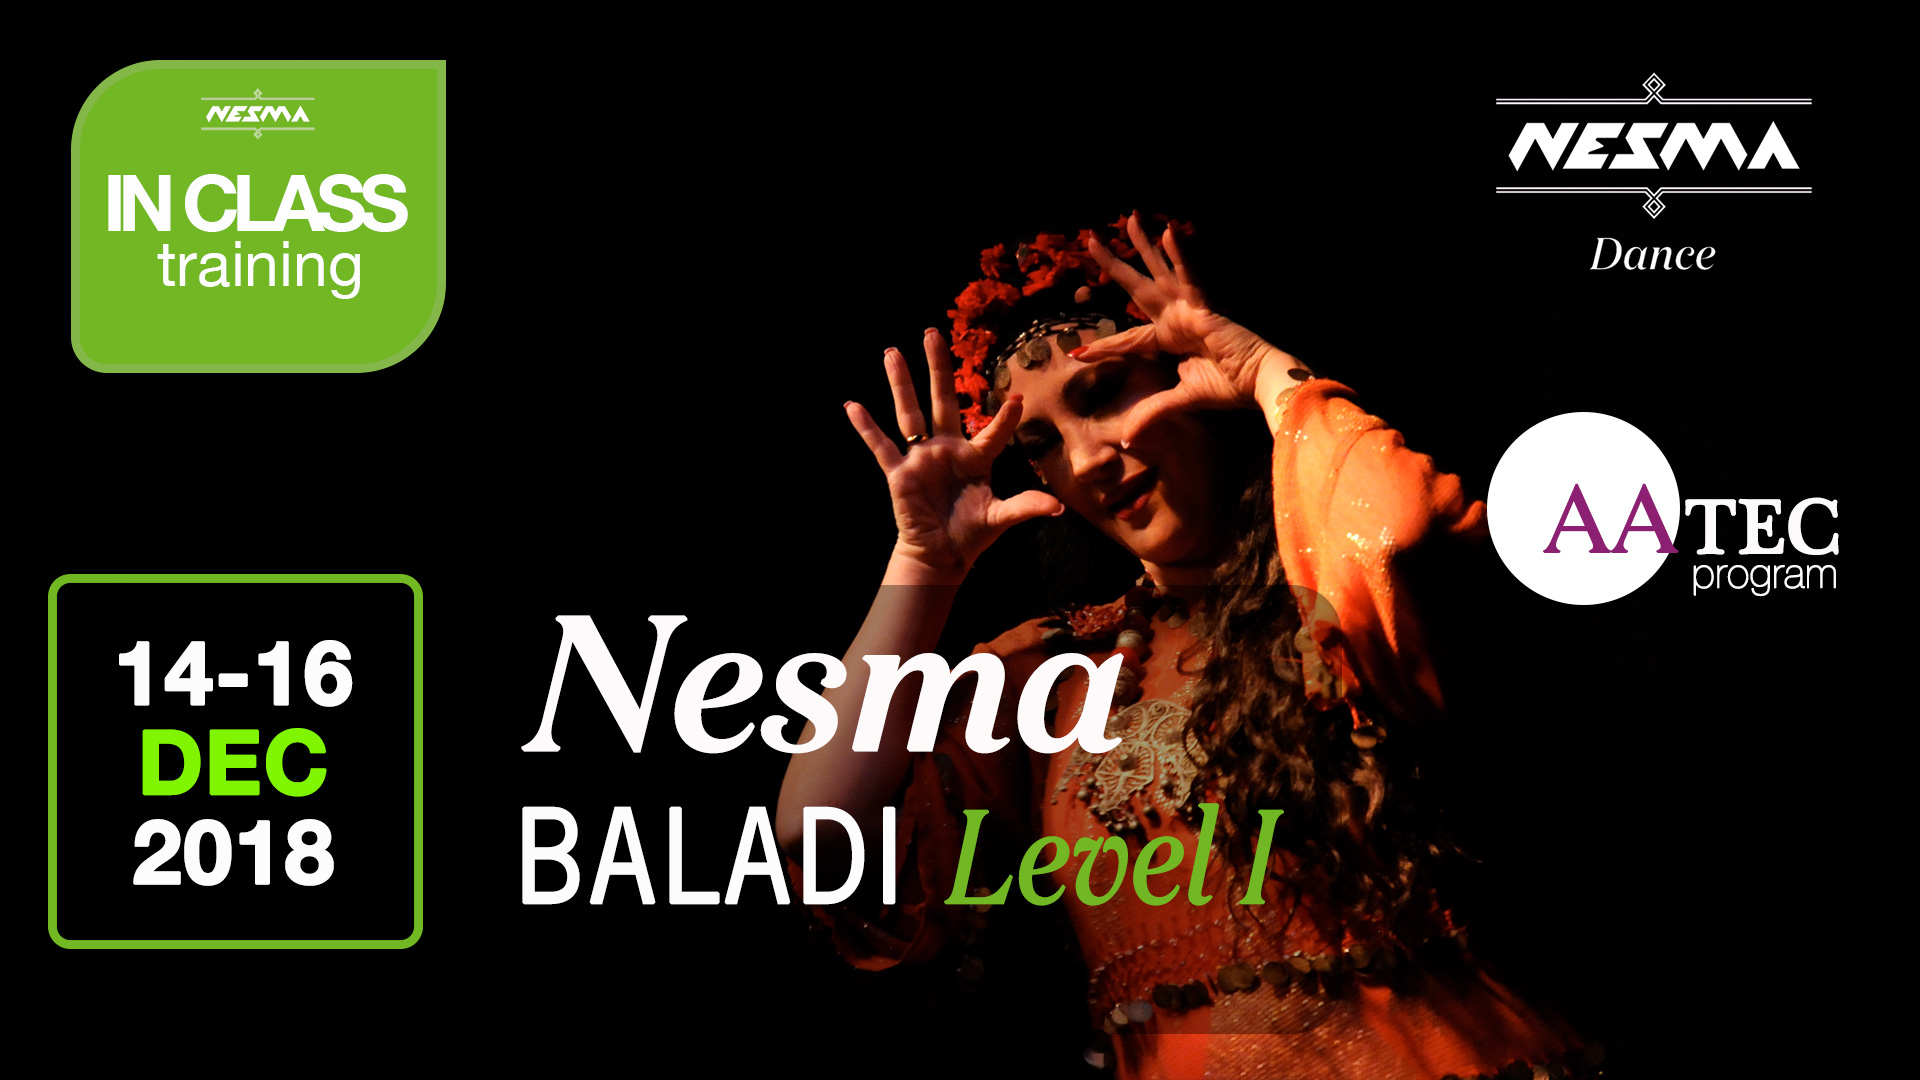 Nesma Baladi Level 1 AATEC Program professional training